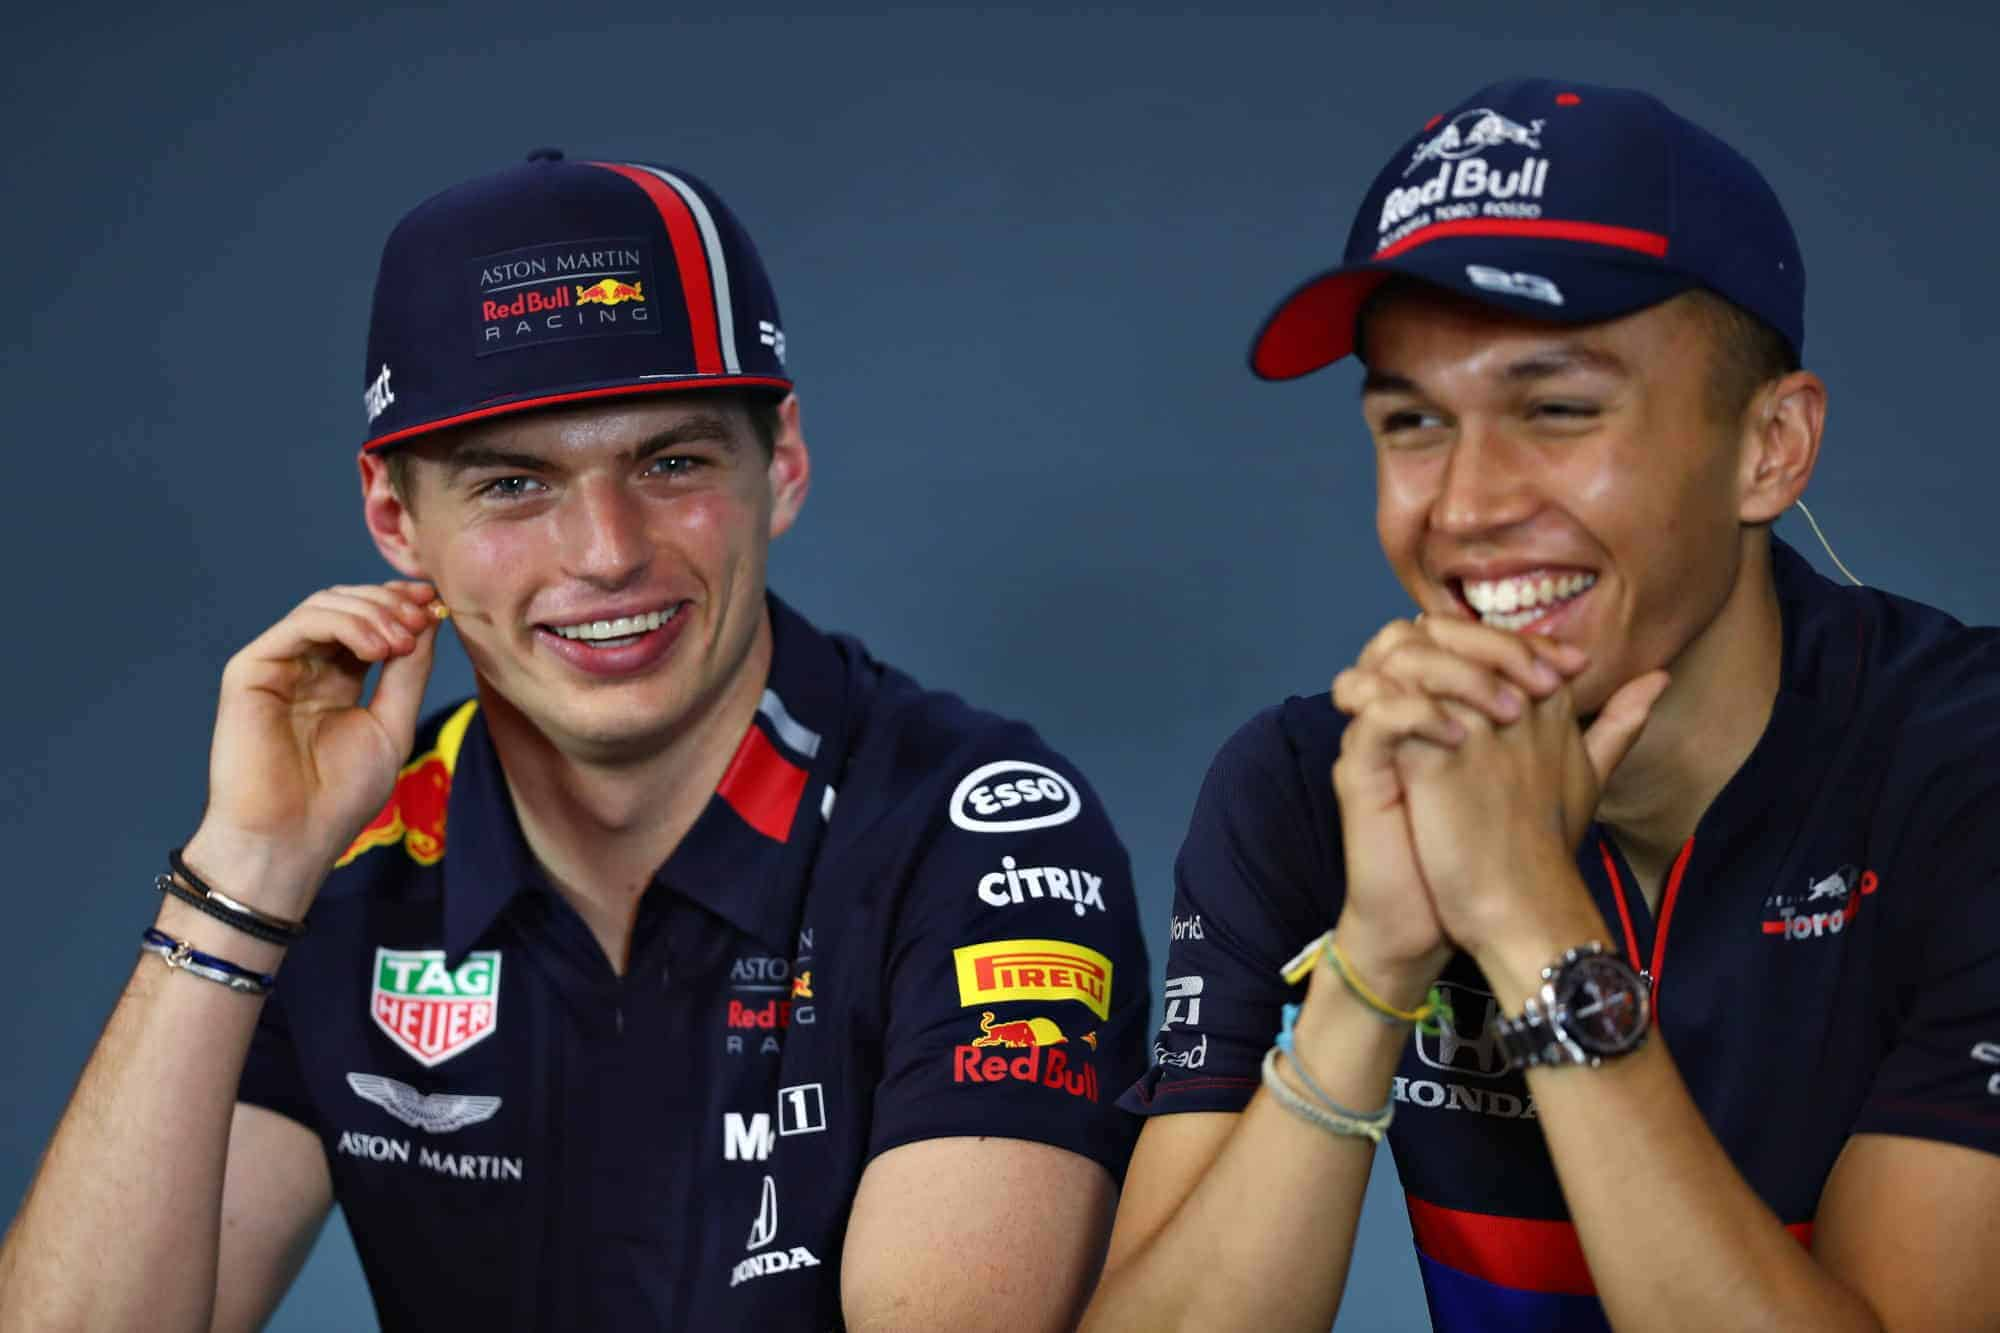 Verstappen Albon Red Bull Toro Rosso F1 2019 press conference Photo Red Bull